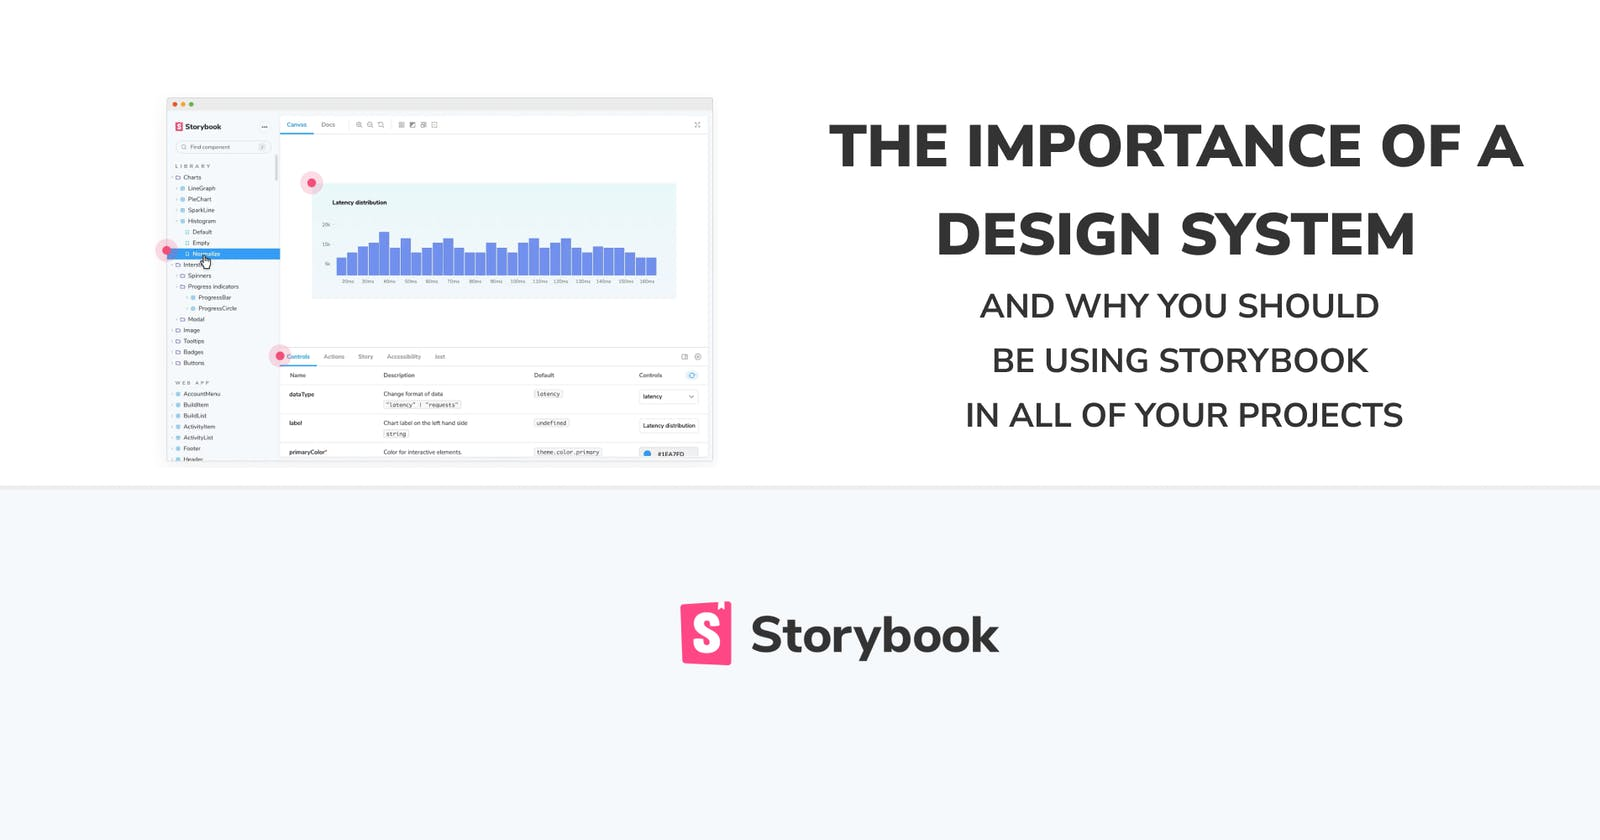 The importance of a design system and why you should be using Storybook in all of your projects